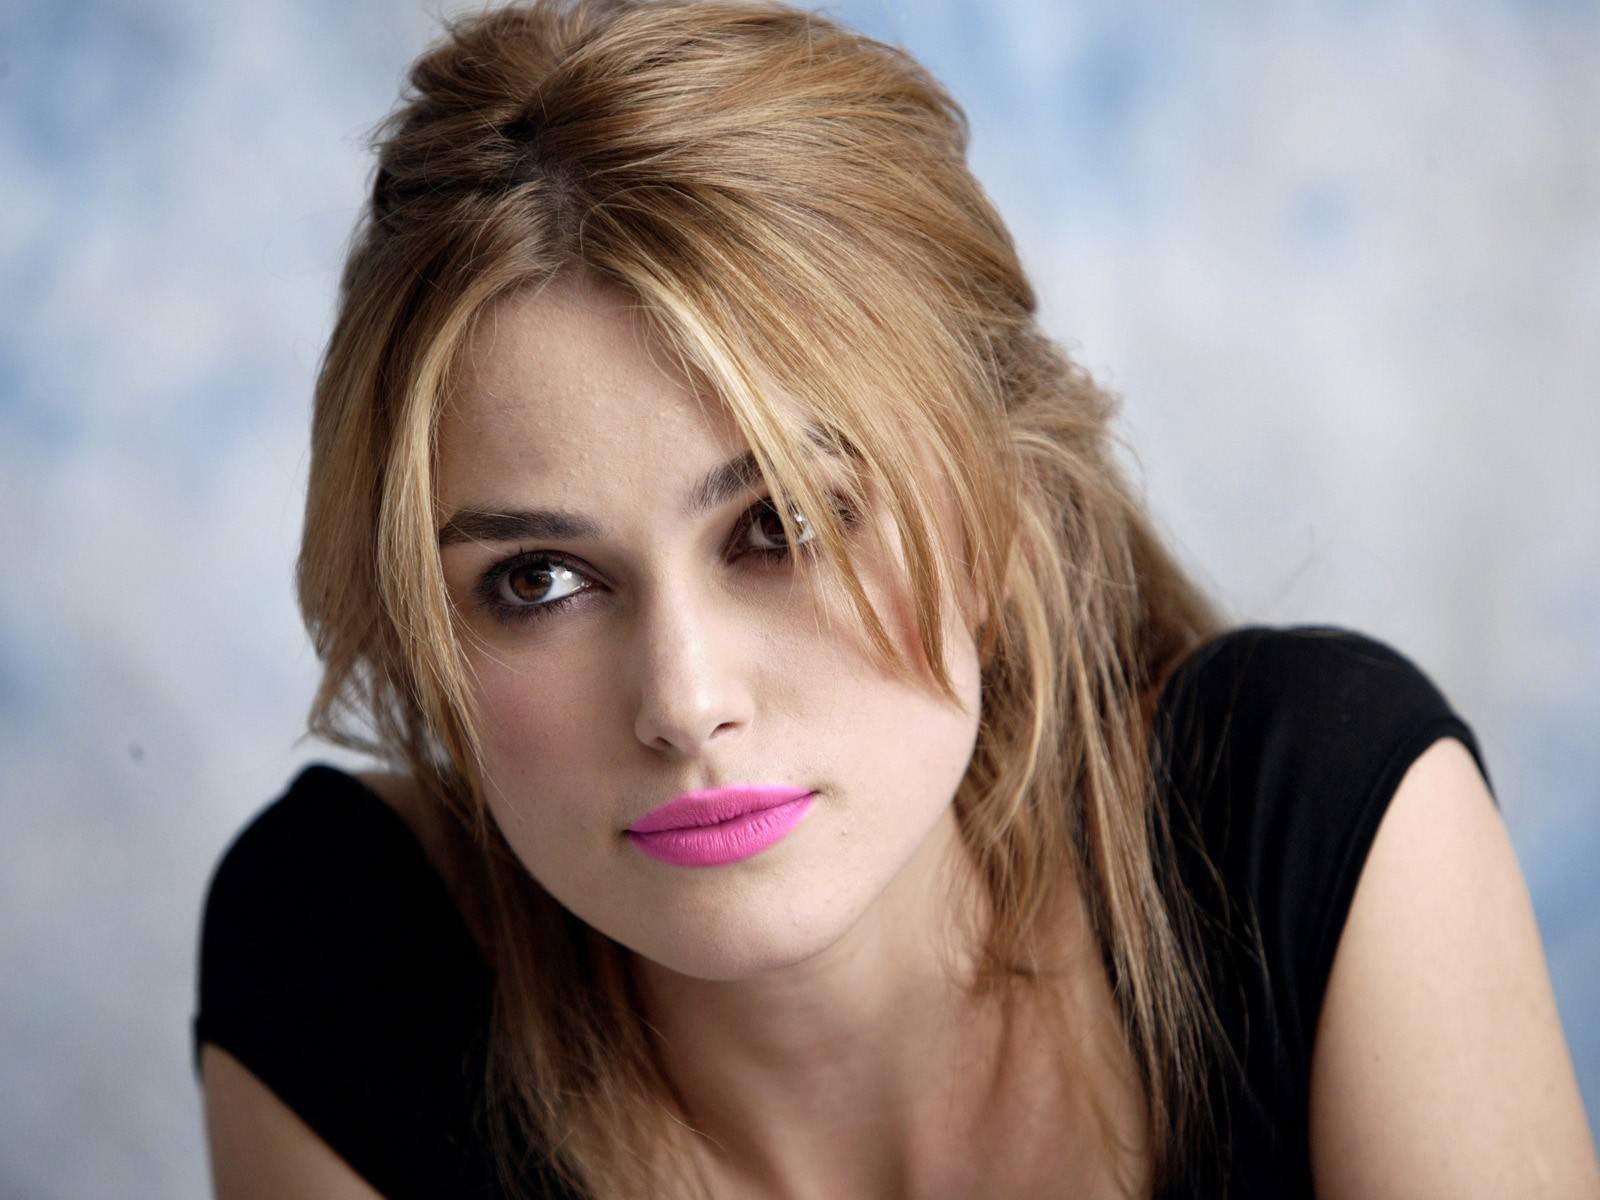 Keira knightley actress pictures